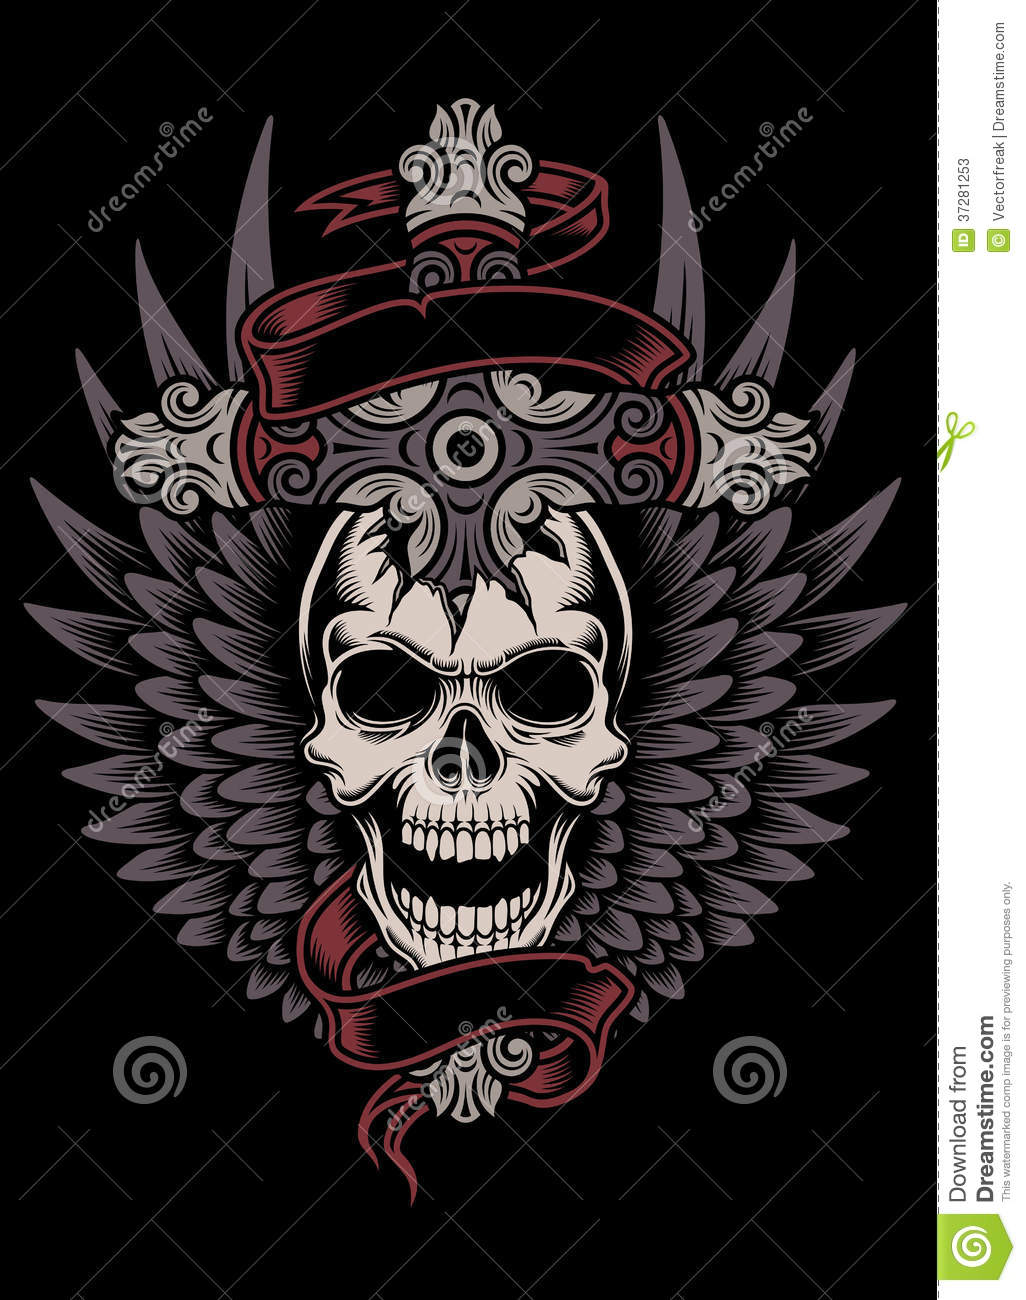 Winged Skull With Cross Stock Photos  Image 37281253